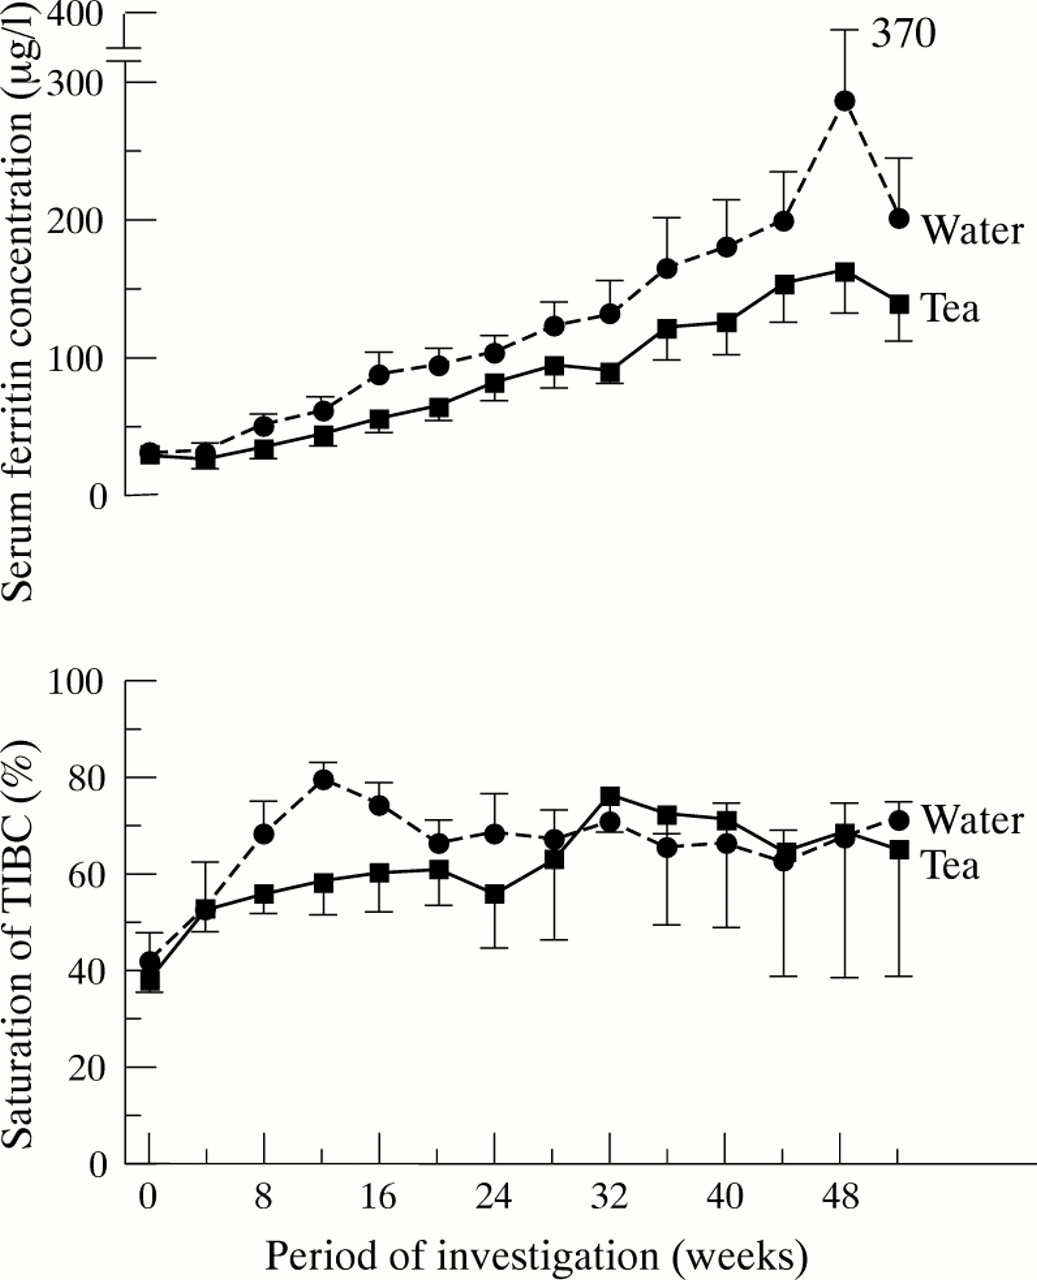 Clinical Trial On The Effect Of Regular Tea Drinking On